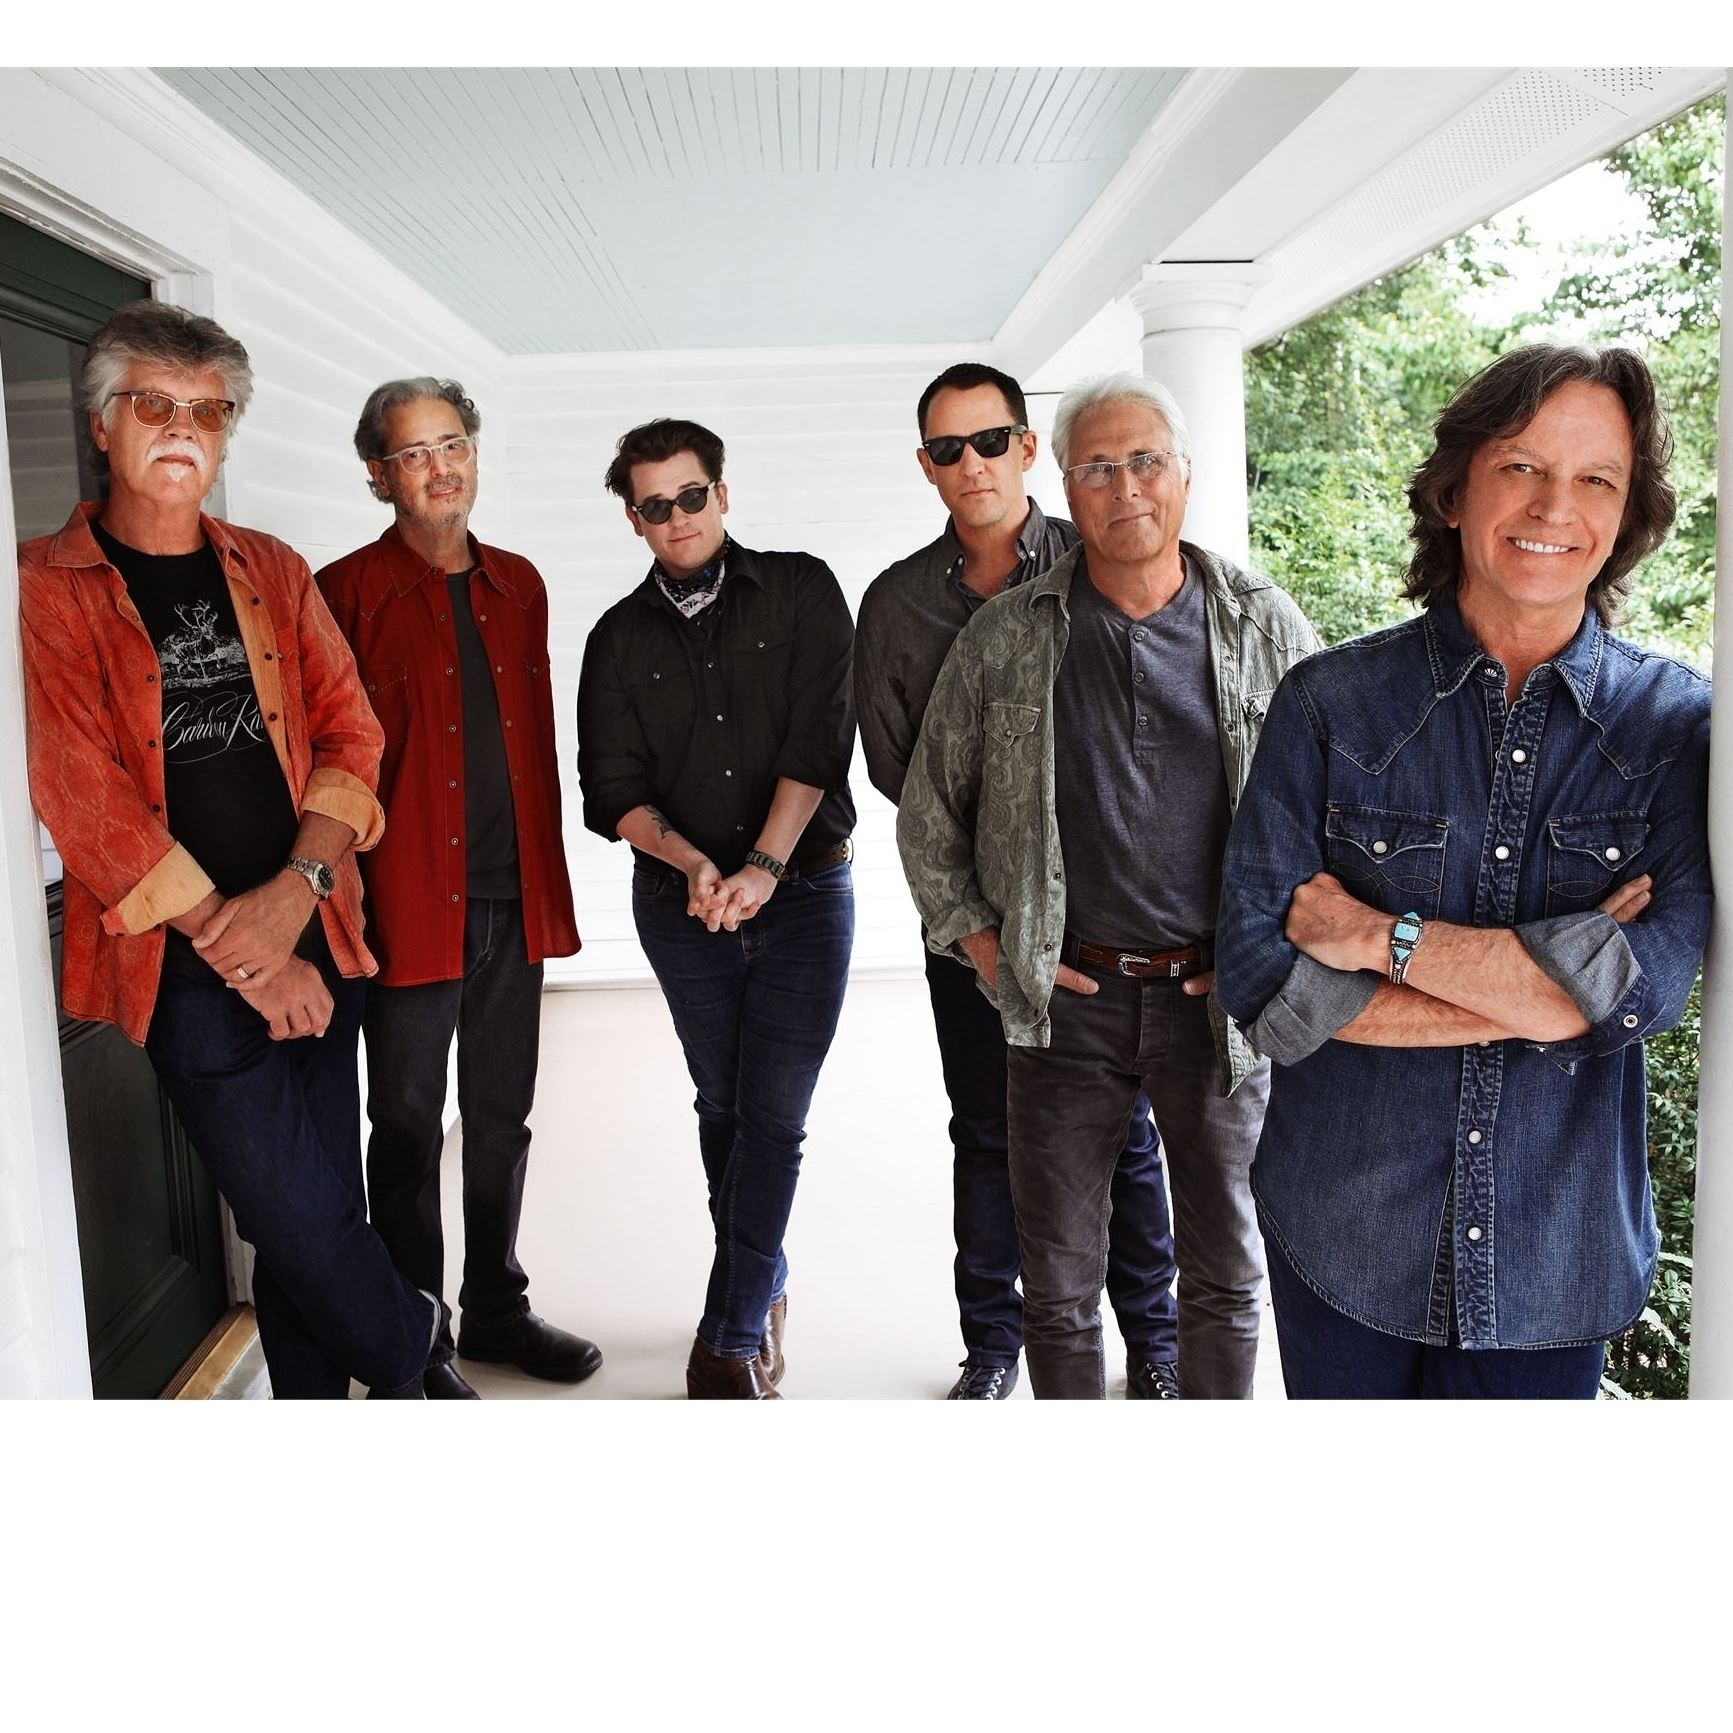 NITTY GRITTY DIRT BAND WITH NED LEDOUX